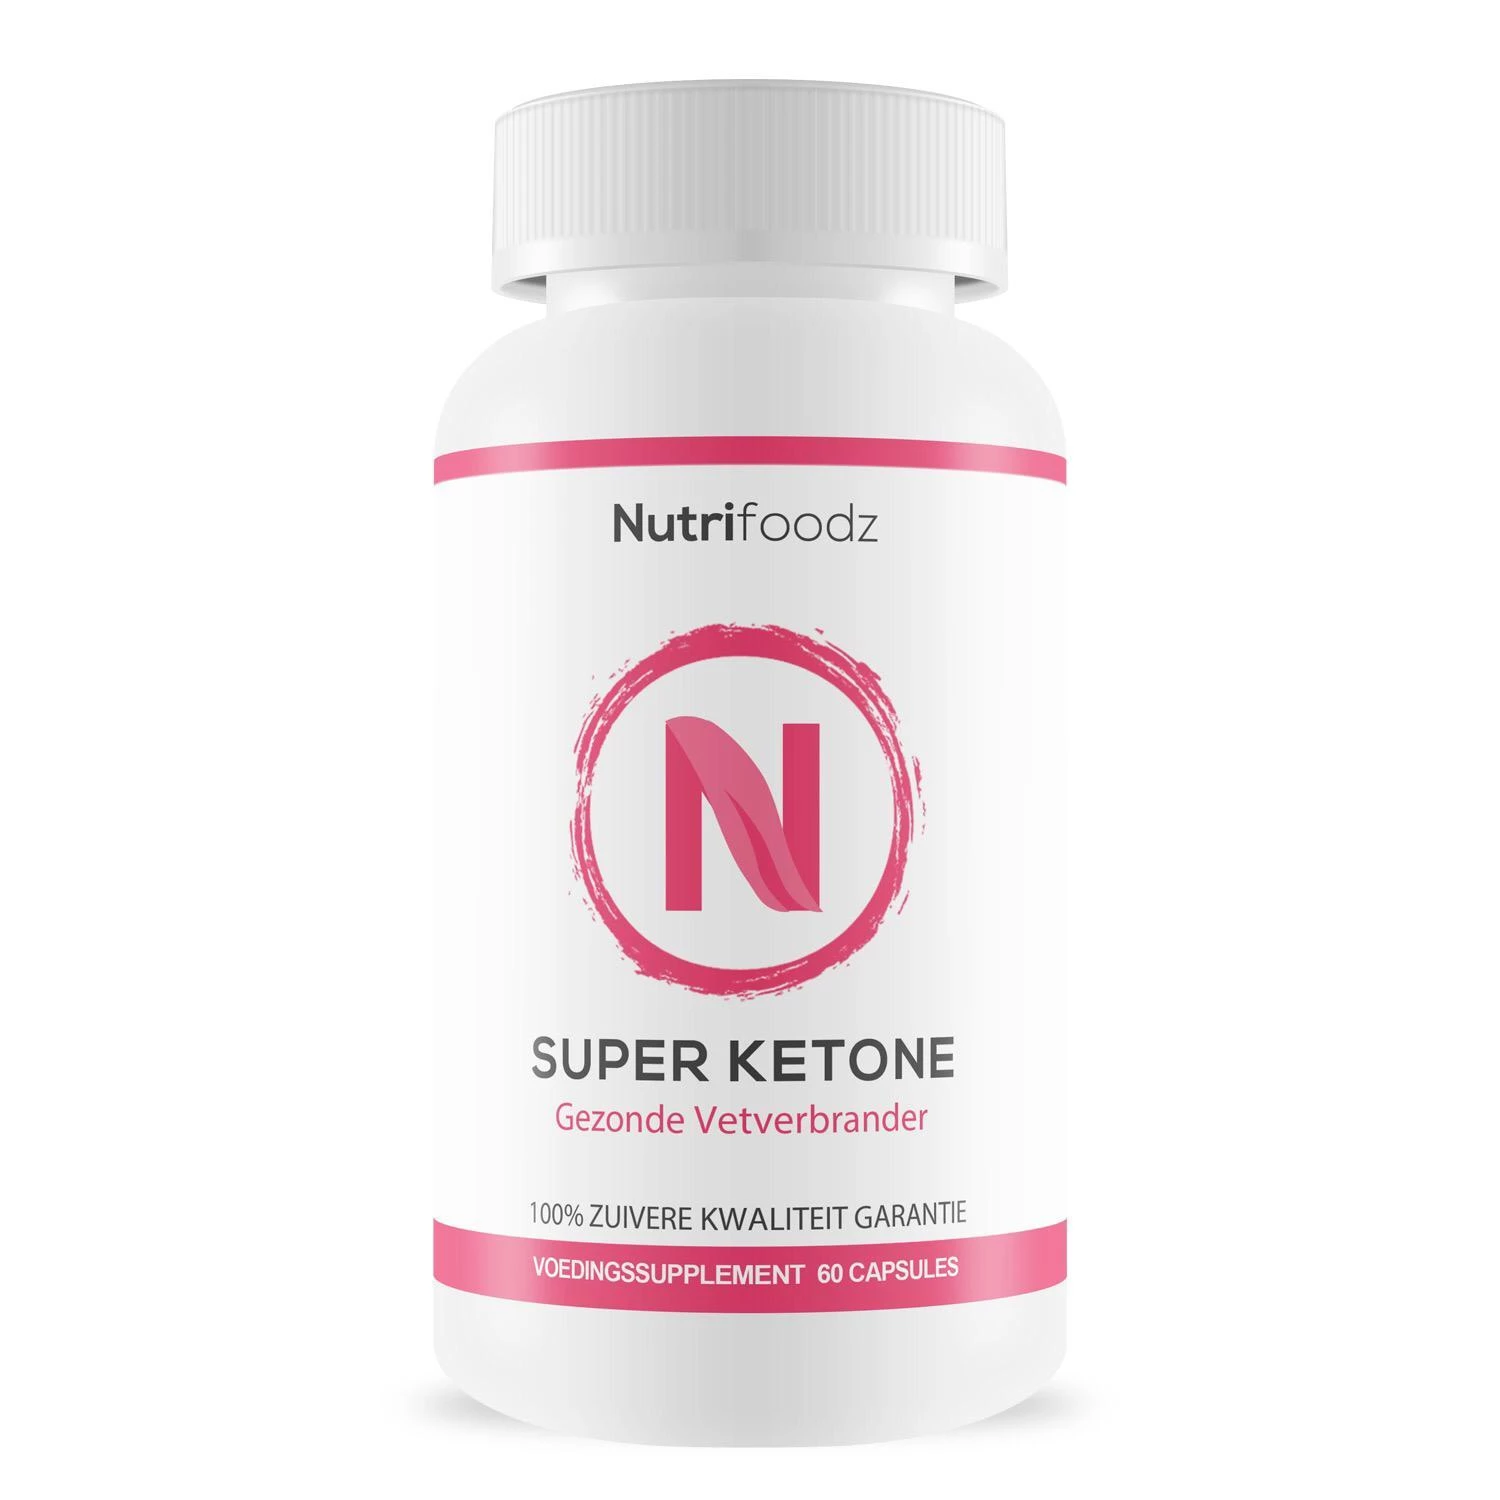 SUPER KETONE nutrition